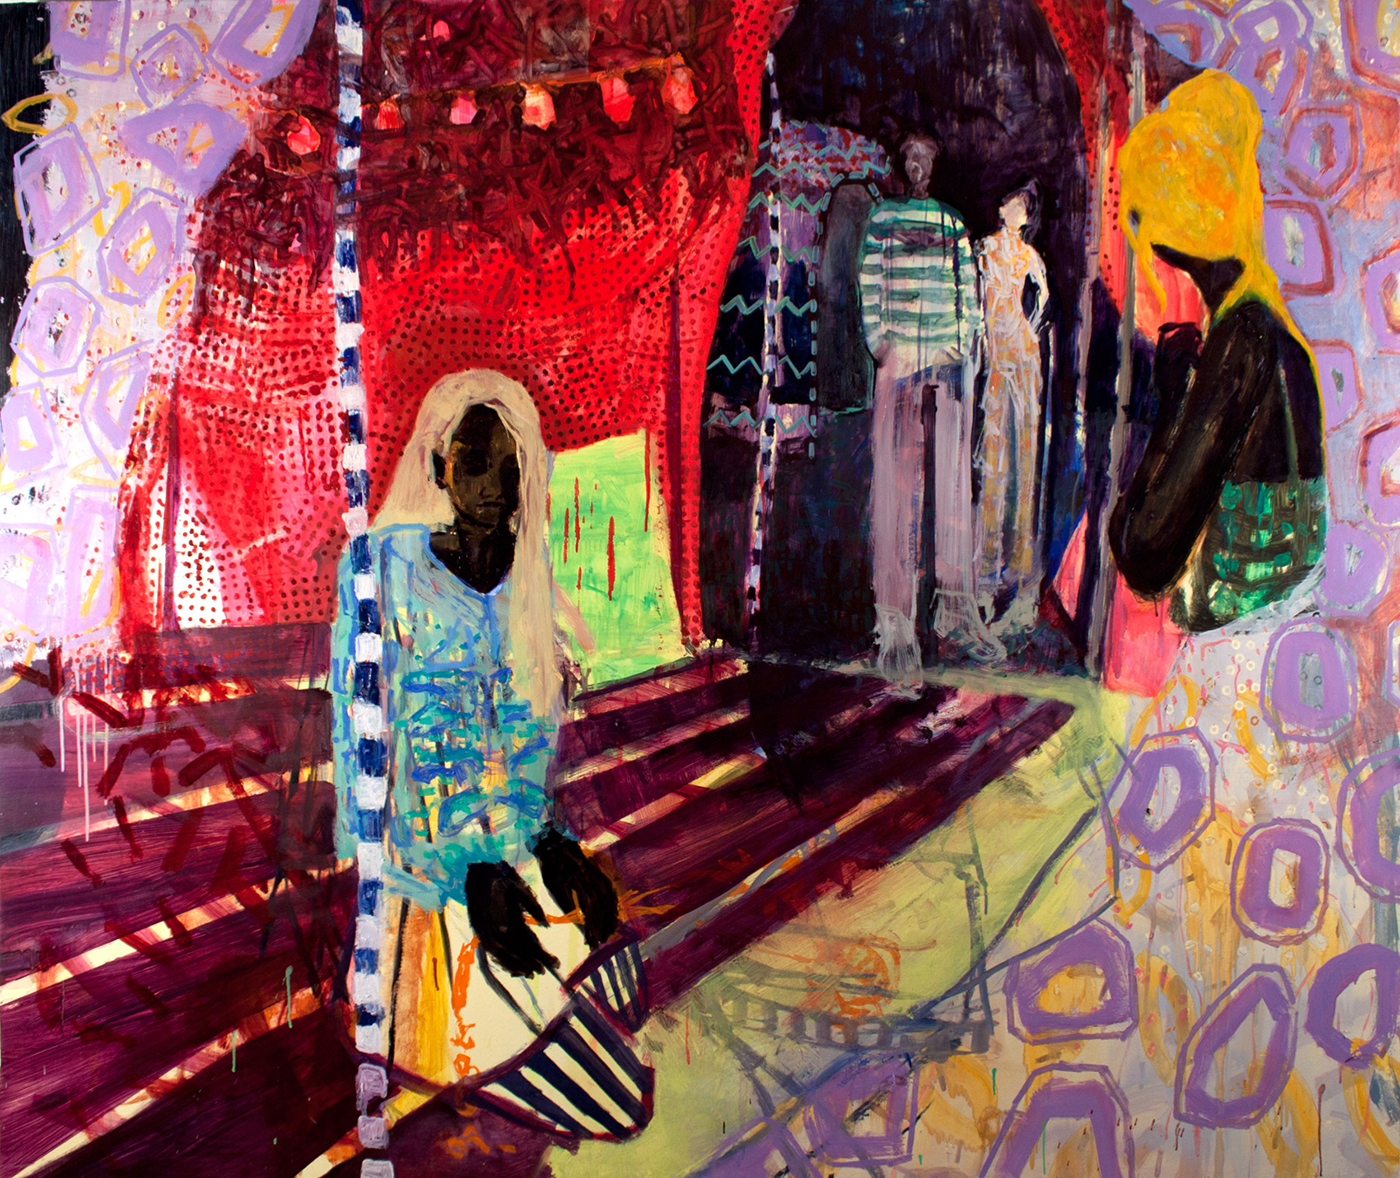 Visitors (Invaders) / 2010, oil on canvas, 200 x 165 cm